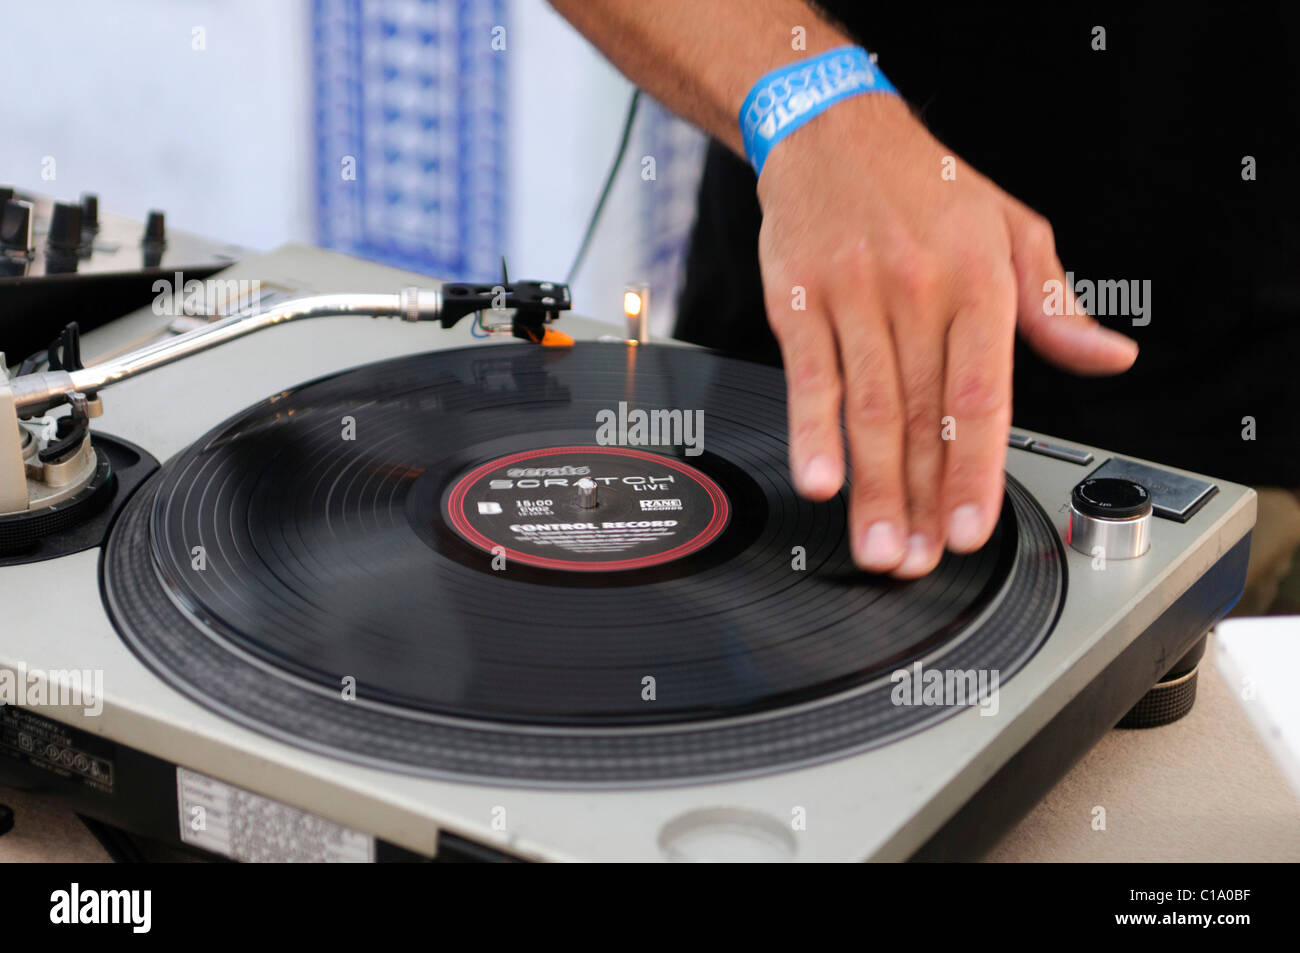 Dj Performing Live Mixing Music Using Mixer And Scratch